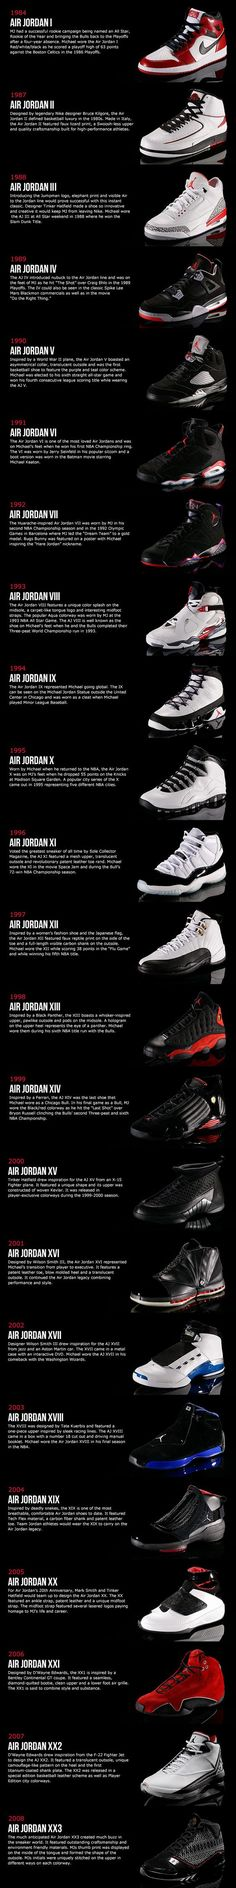 History of Air Jordan Shoes. Air Jordan is a brand of basketball footwear and athletic clothing produced by Nike and endorsed and created for Chicago Bulls basketball player Michael Jordan Aegis Gears Zapatos Air Jordan, Air Jordan Sneakers, Jordans Sneakers, Jordan Shoes For Men, Shoes Sneakers, Jordans Outfit For Men, Michael Jordan Shoes, Sneakers Adidas, Chunky Sneakers